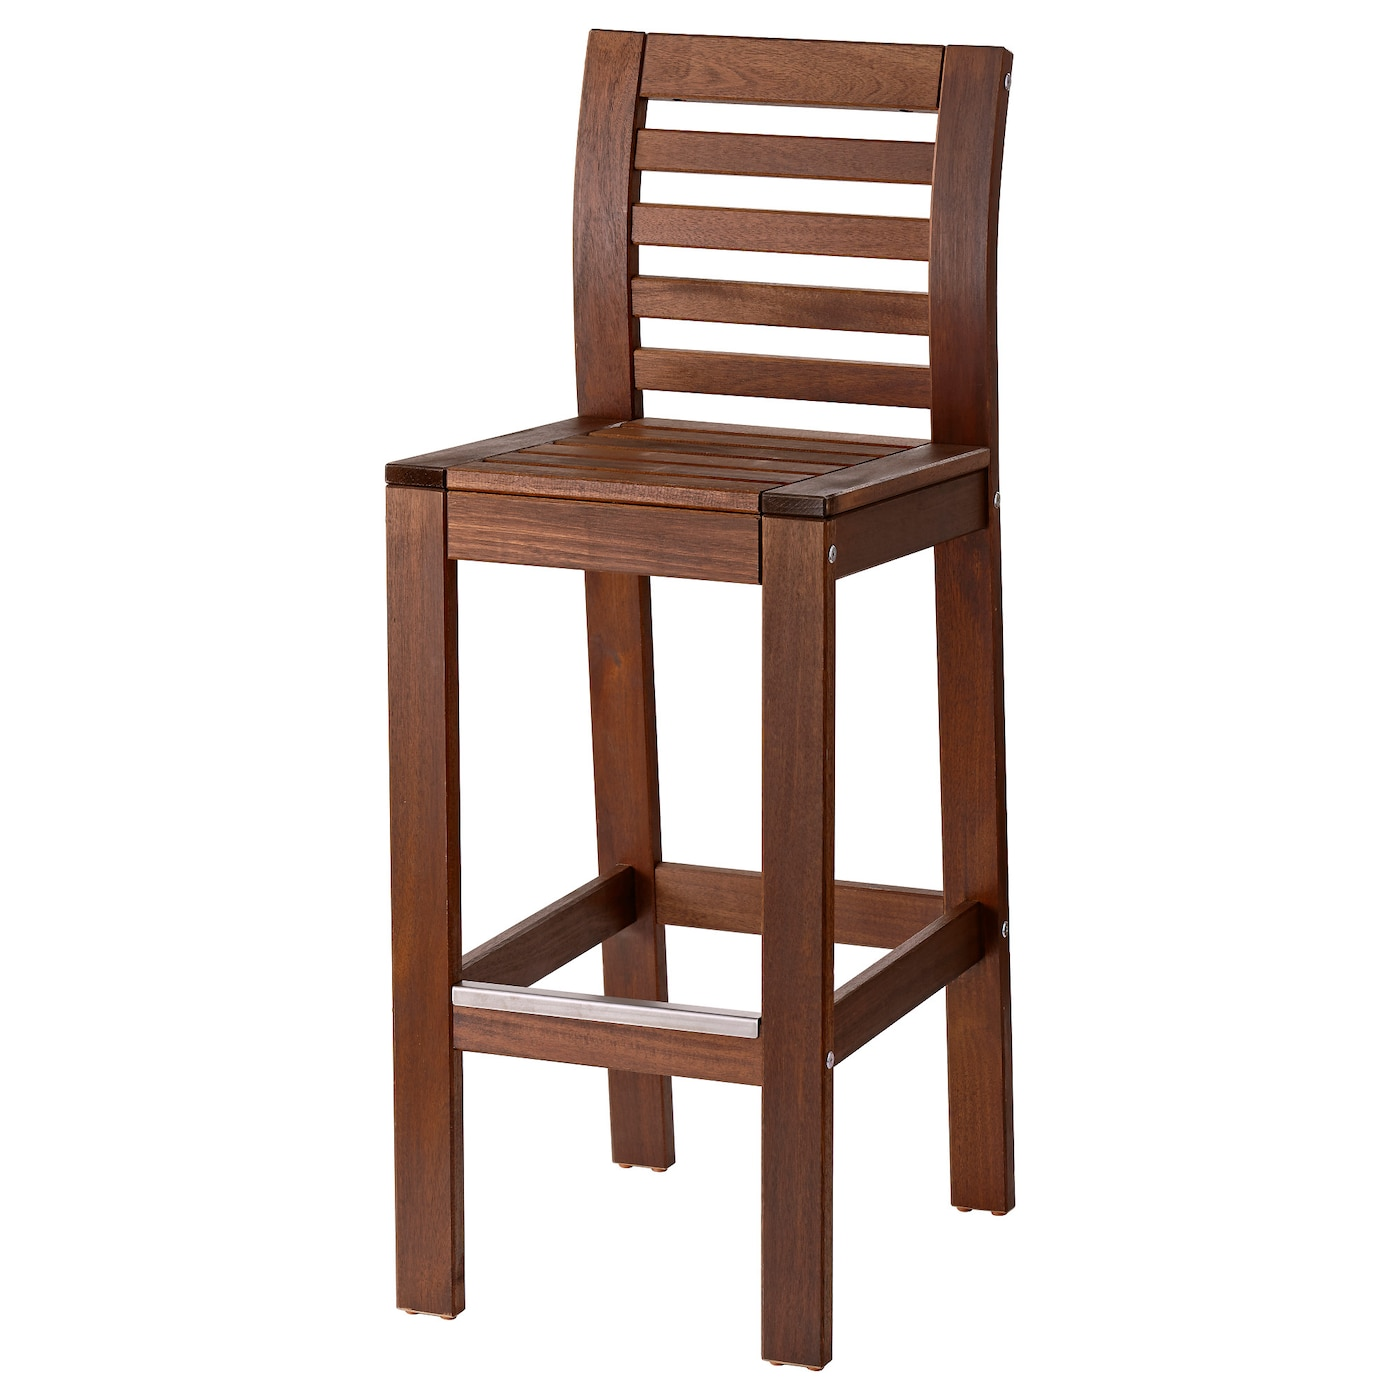 IKEA ÄPPLARÖ Bar Stool With Backrest, Outdoor